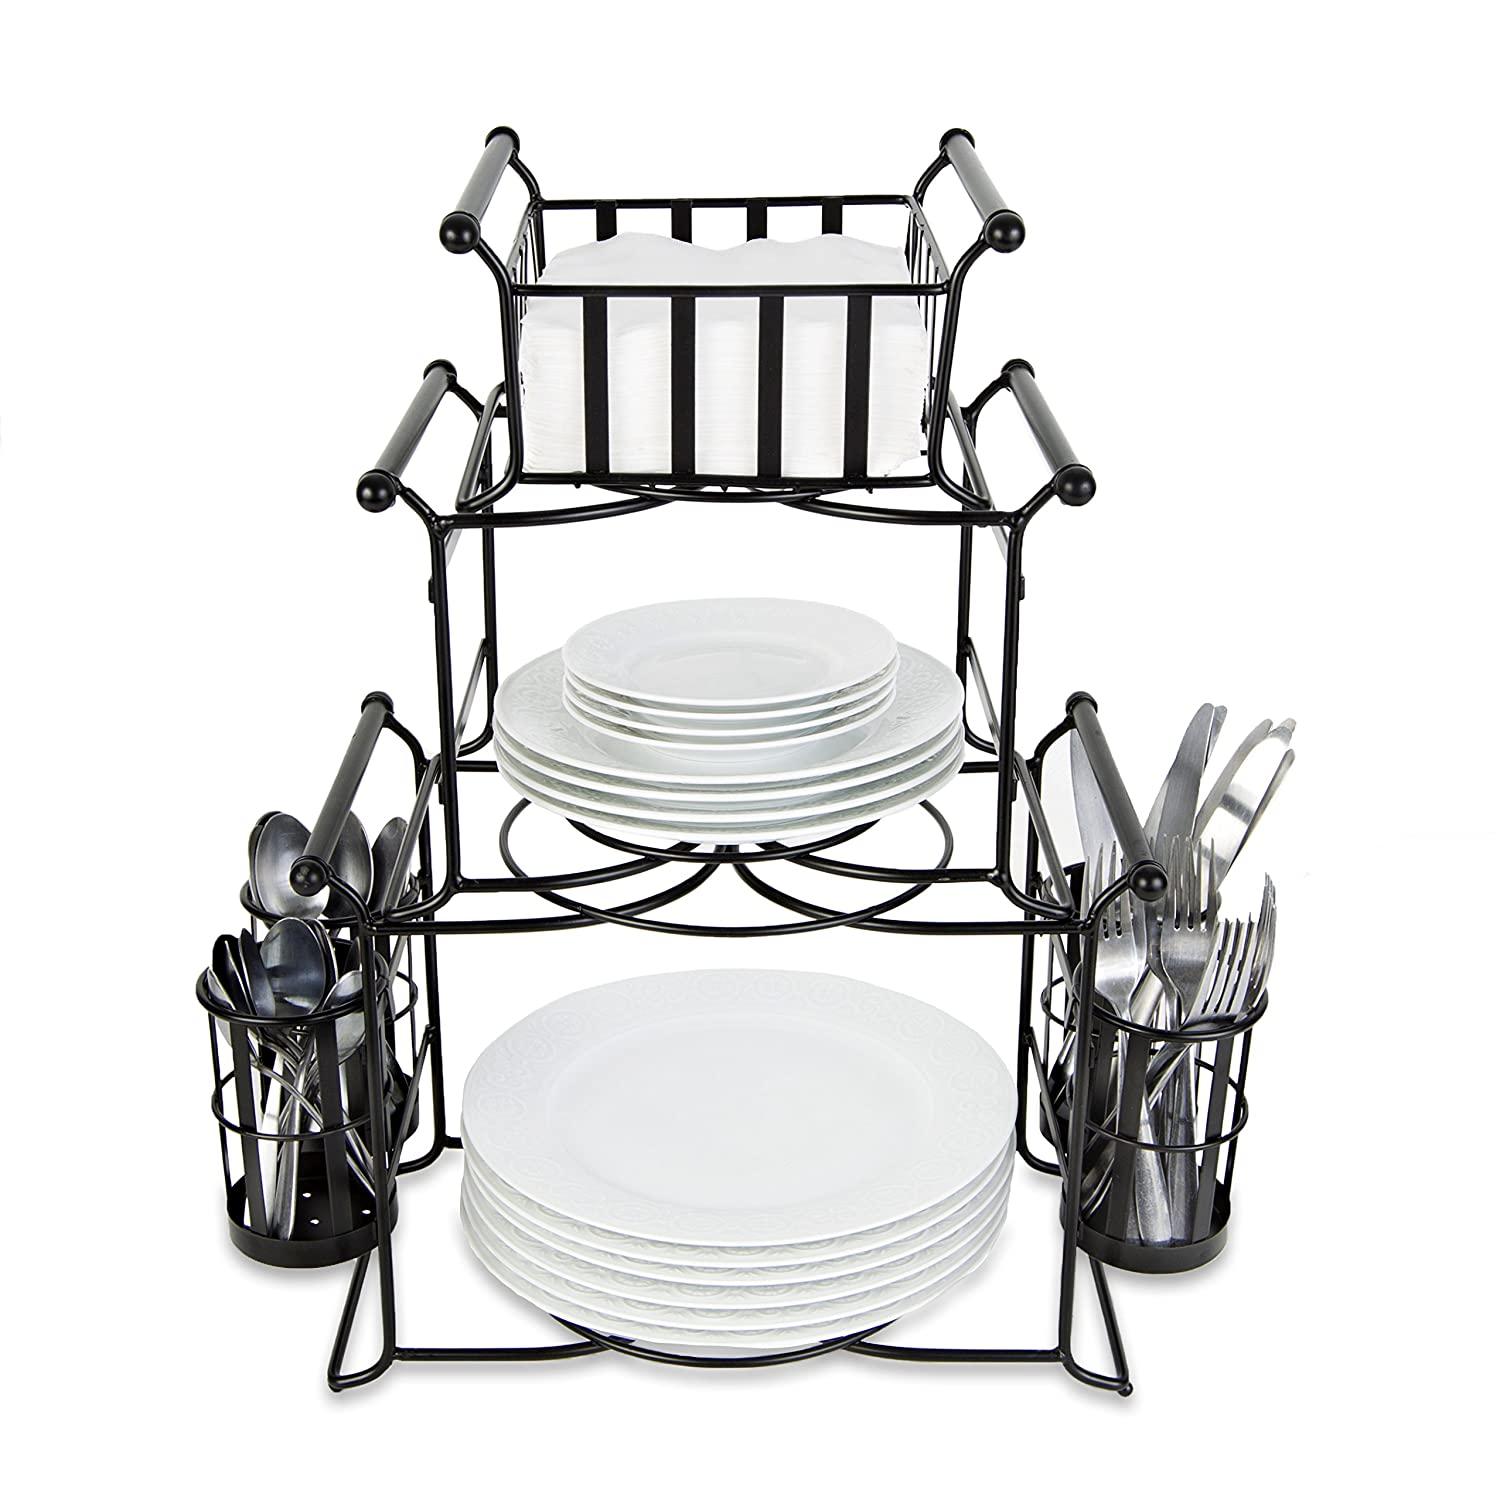 BisonHome Stackable Buffet Caddy Organizer (7-Piece Set) Modern Server for Hosting Parties, Serving Dinner, Carrying Utensils | Metal, Modular Design | Compact, Portable